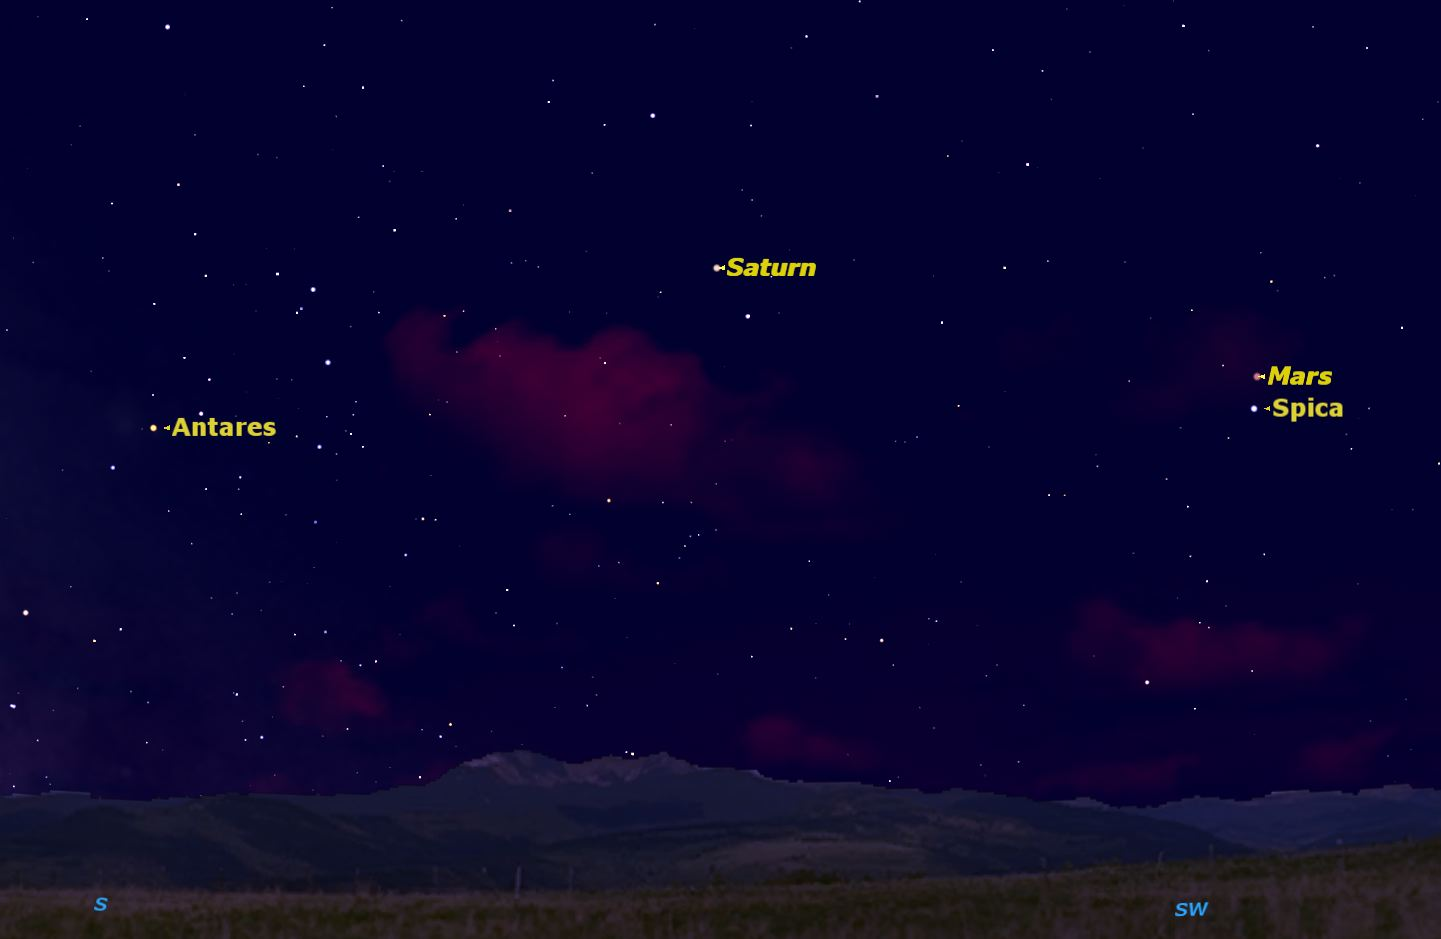 Just as twilight ends in the evening this week, the planet Mars and bright star Spica do a celestial dance. Antares and Saturn are nearby. Credit: Starry Night software.